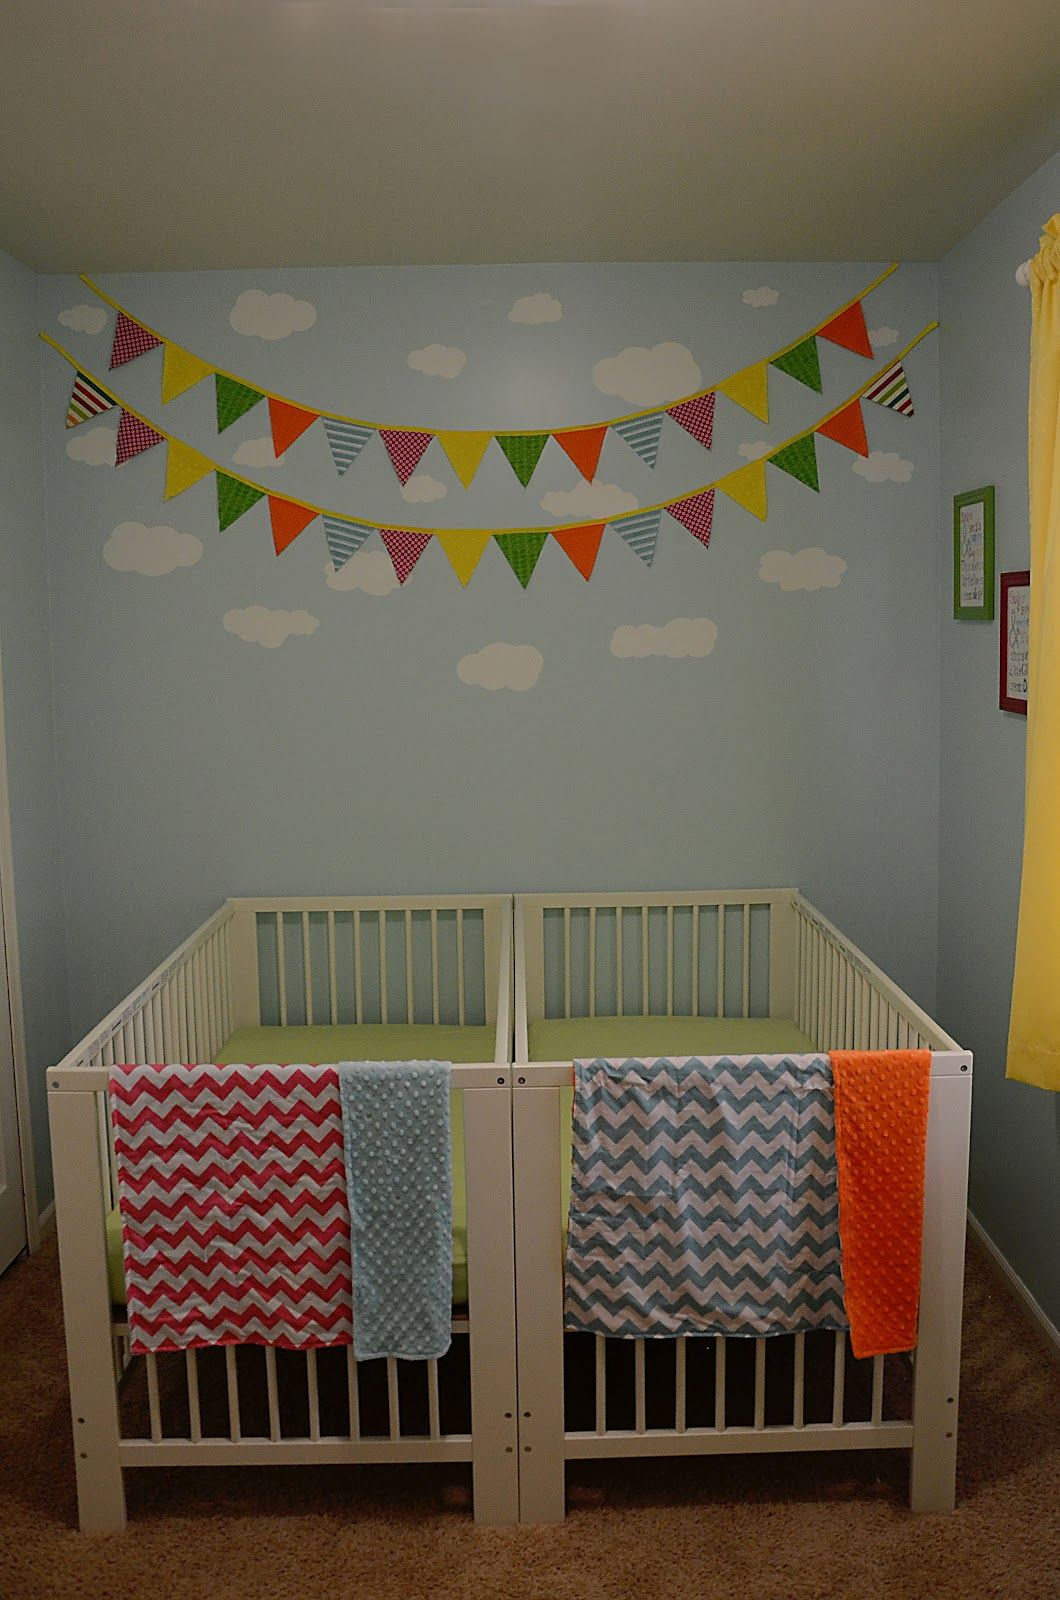 rocker transition let make feature in s here your twins transitioned for bassinet crib baby sleeping how stuff room we a hey still or cribs to x sleep